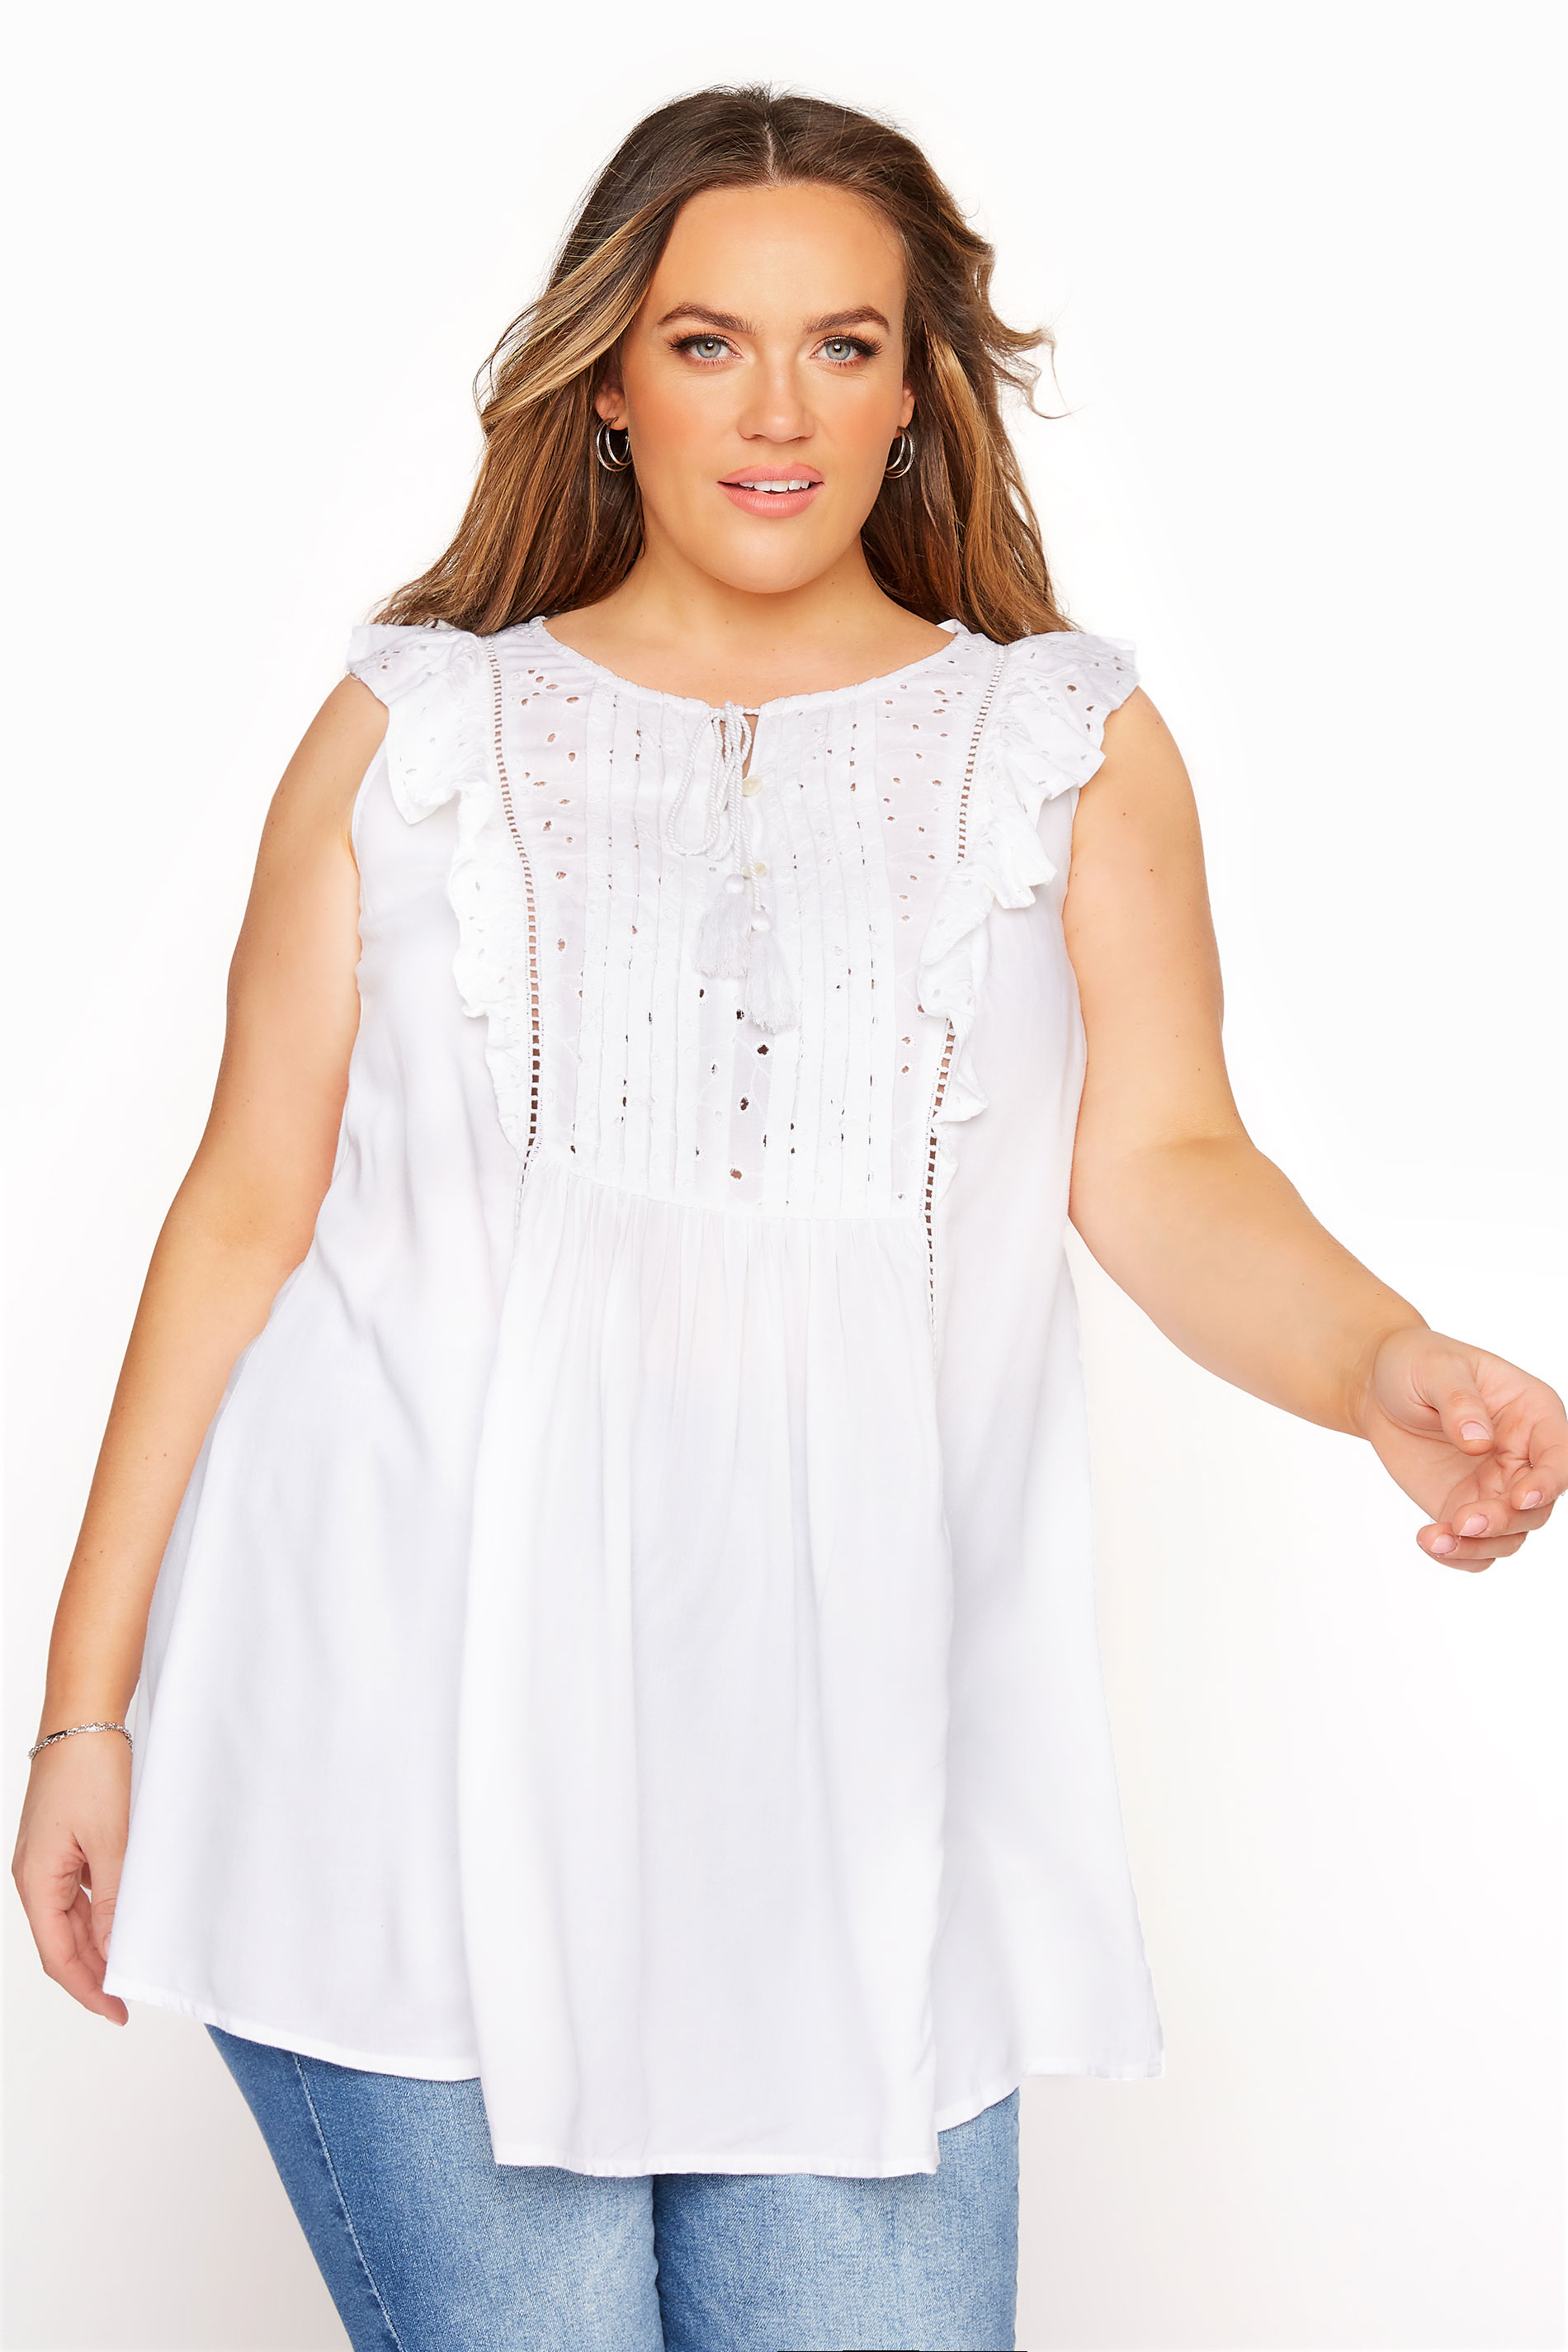 White Broderie Anglaise Frill Top